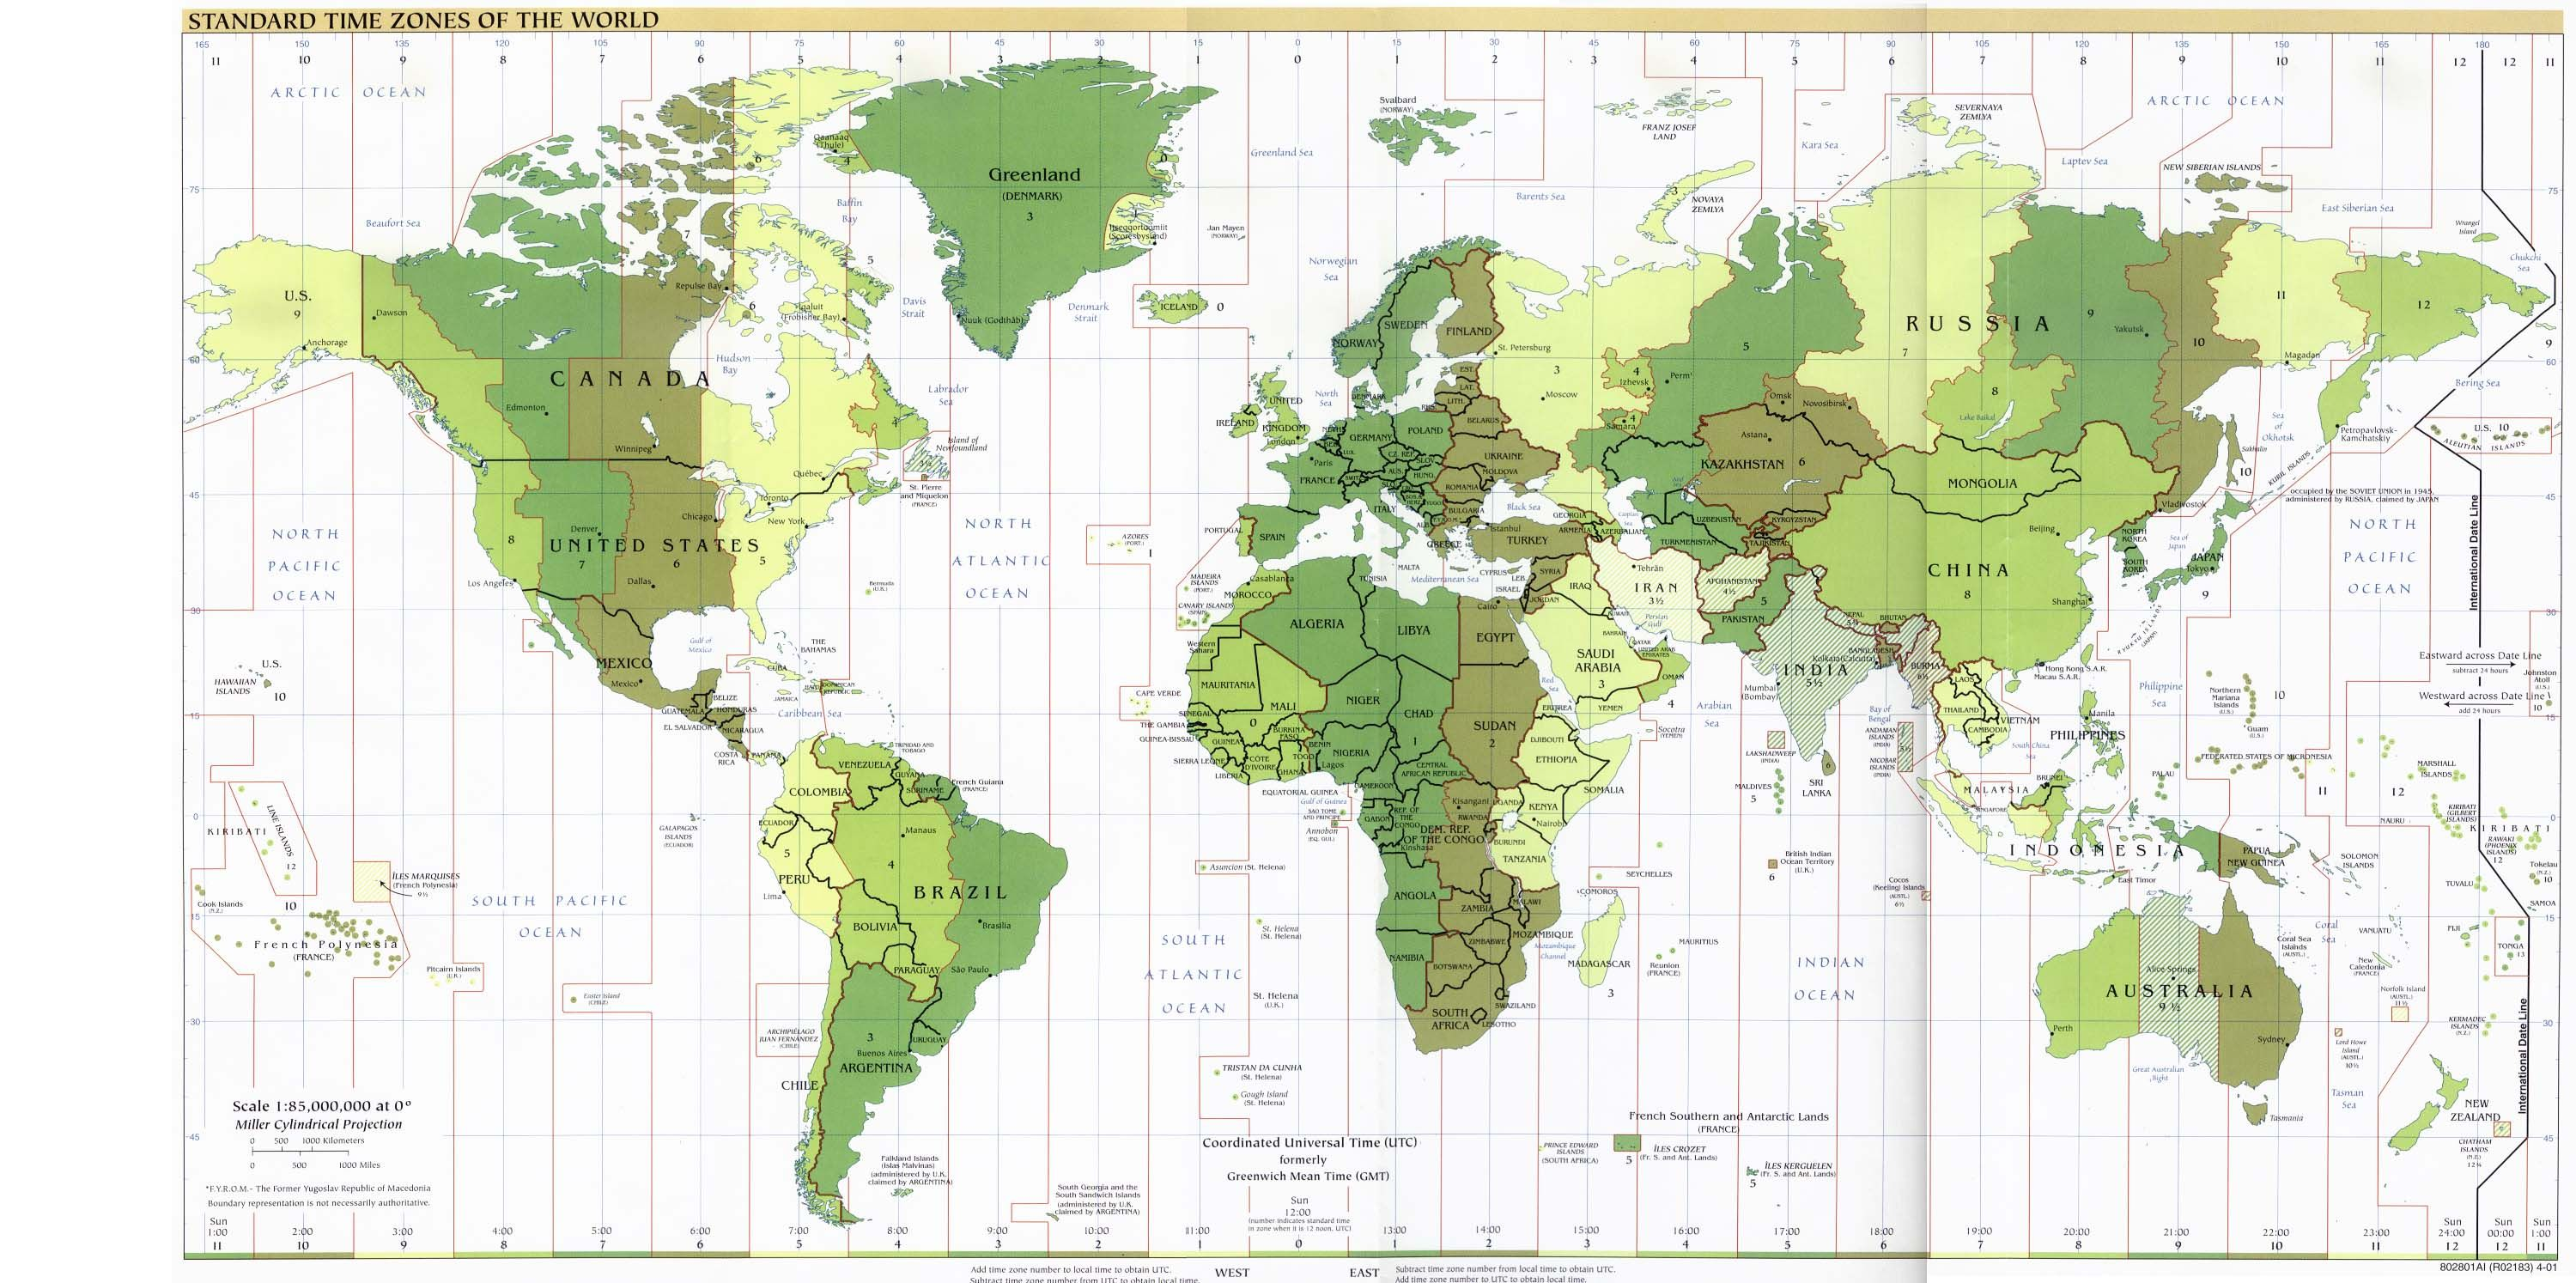 World atlas with latitude and longitude hd wallpapers download world atlas with latitude and longitude hd wallpapers download free world atlas with latitude and longitude gumiabroncs Choice Image